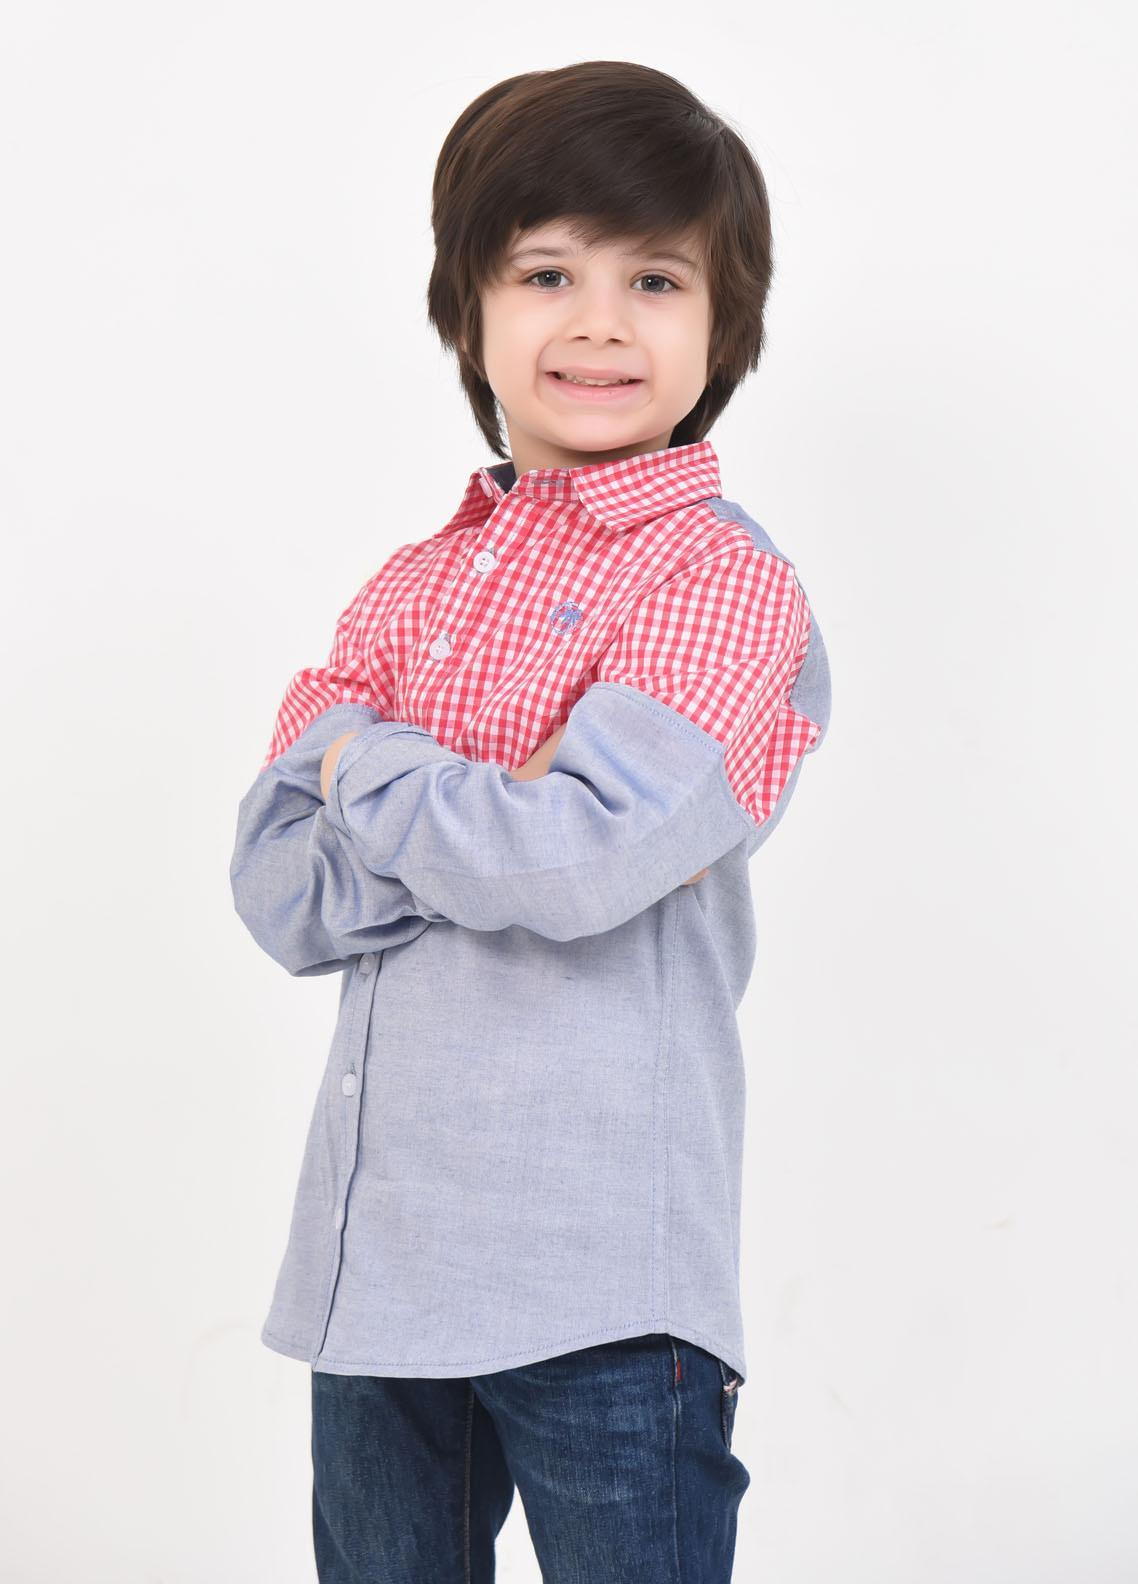 Ochre Cotton Casual Boys Shirts -  OBS-15 Red